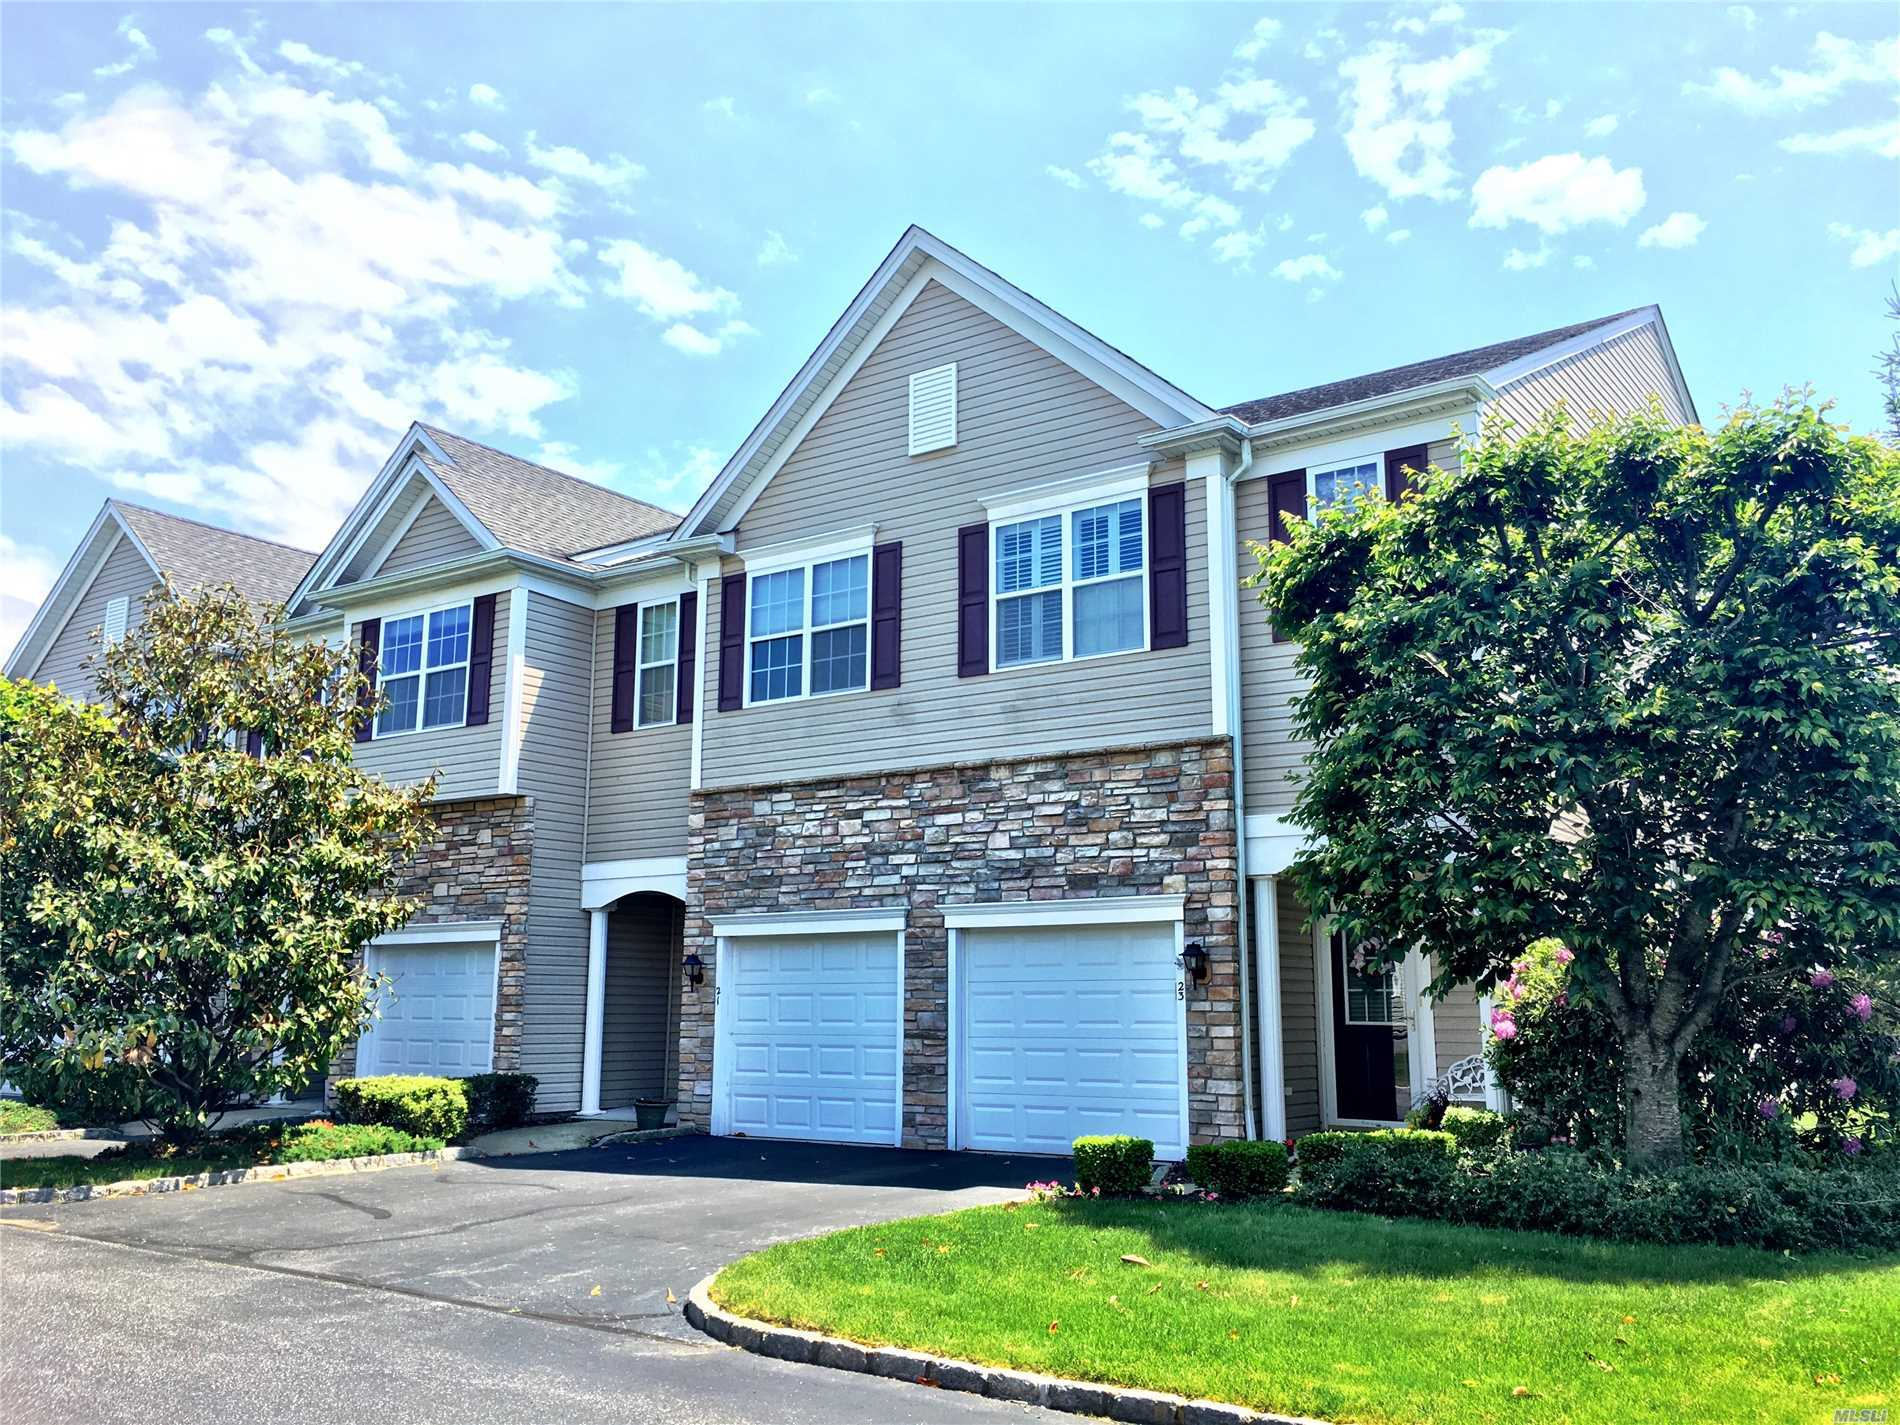 Property for sale at 21 Virginia Pine Ln, Bay Shore,  NY 11706